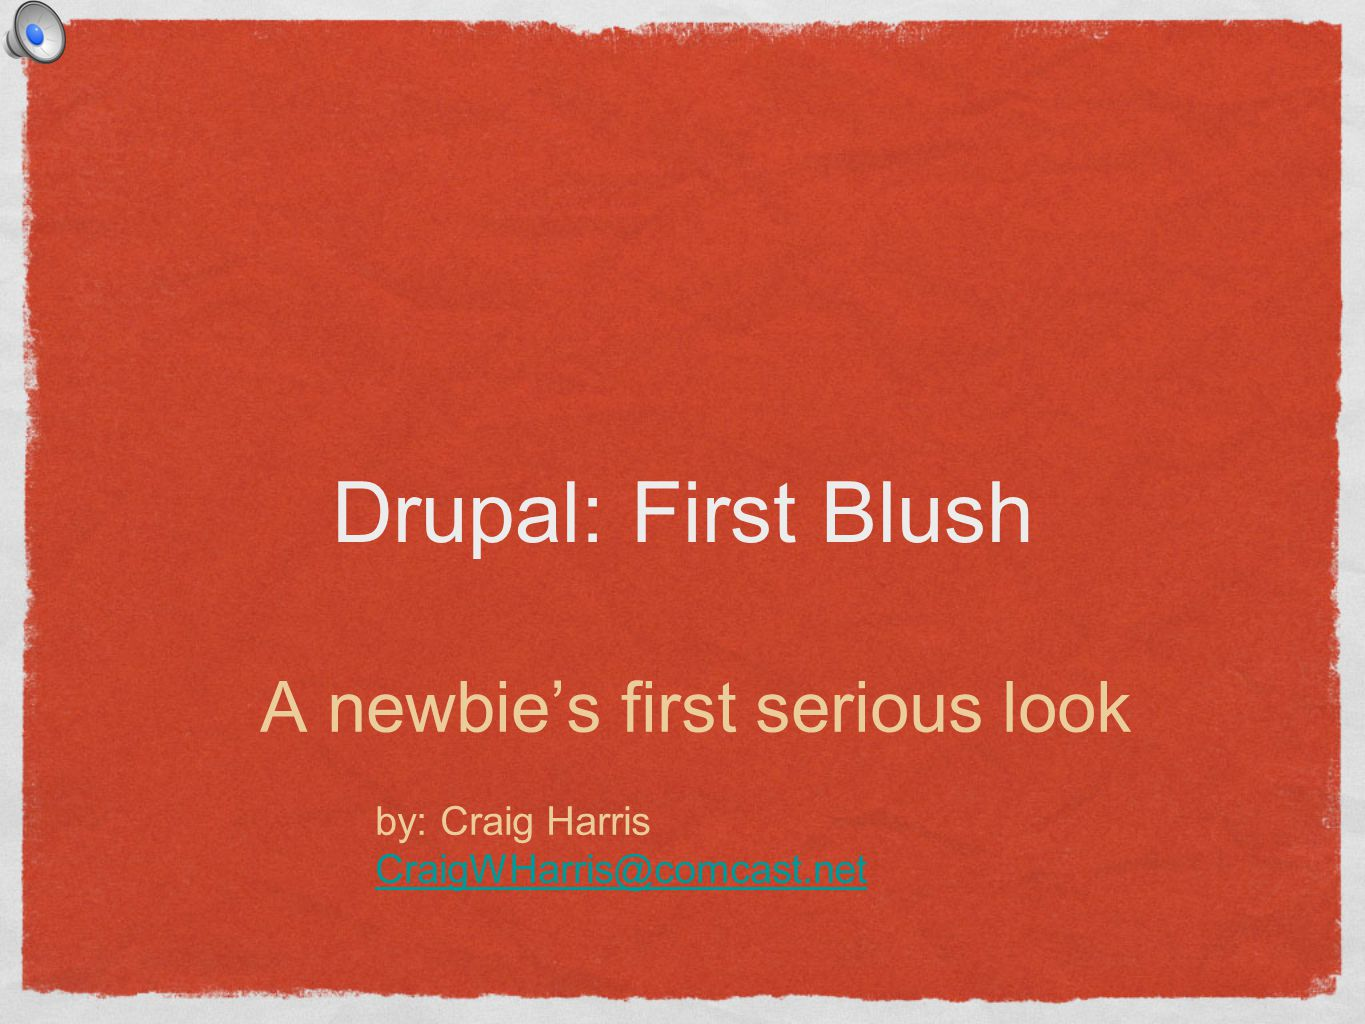 THe resources I used It was frustrating at first: The Drupal site seemed opaque and complex.